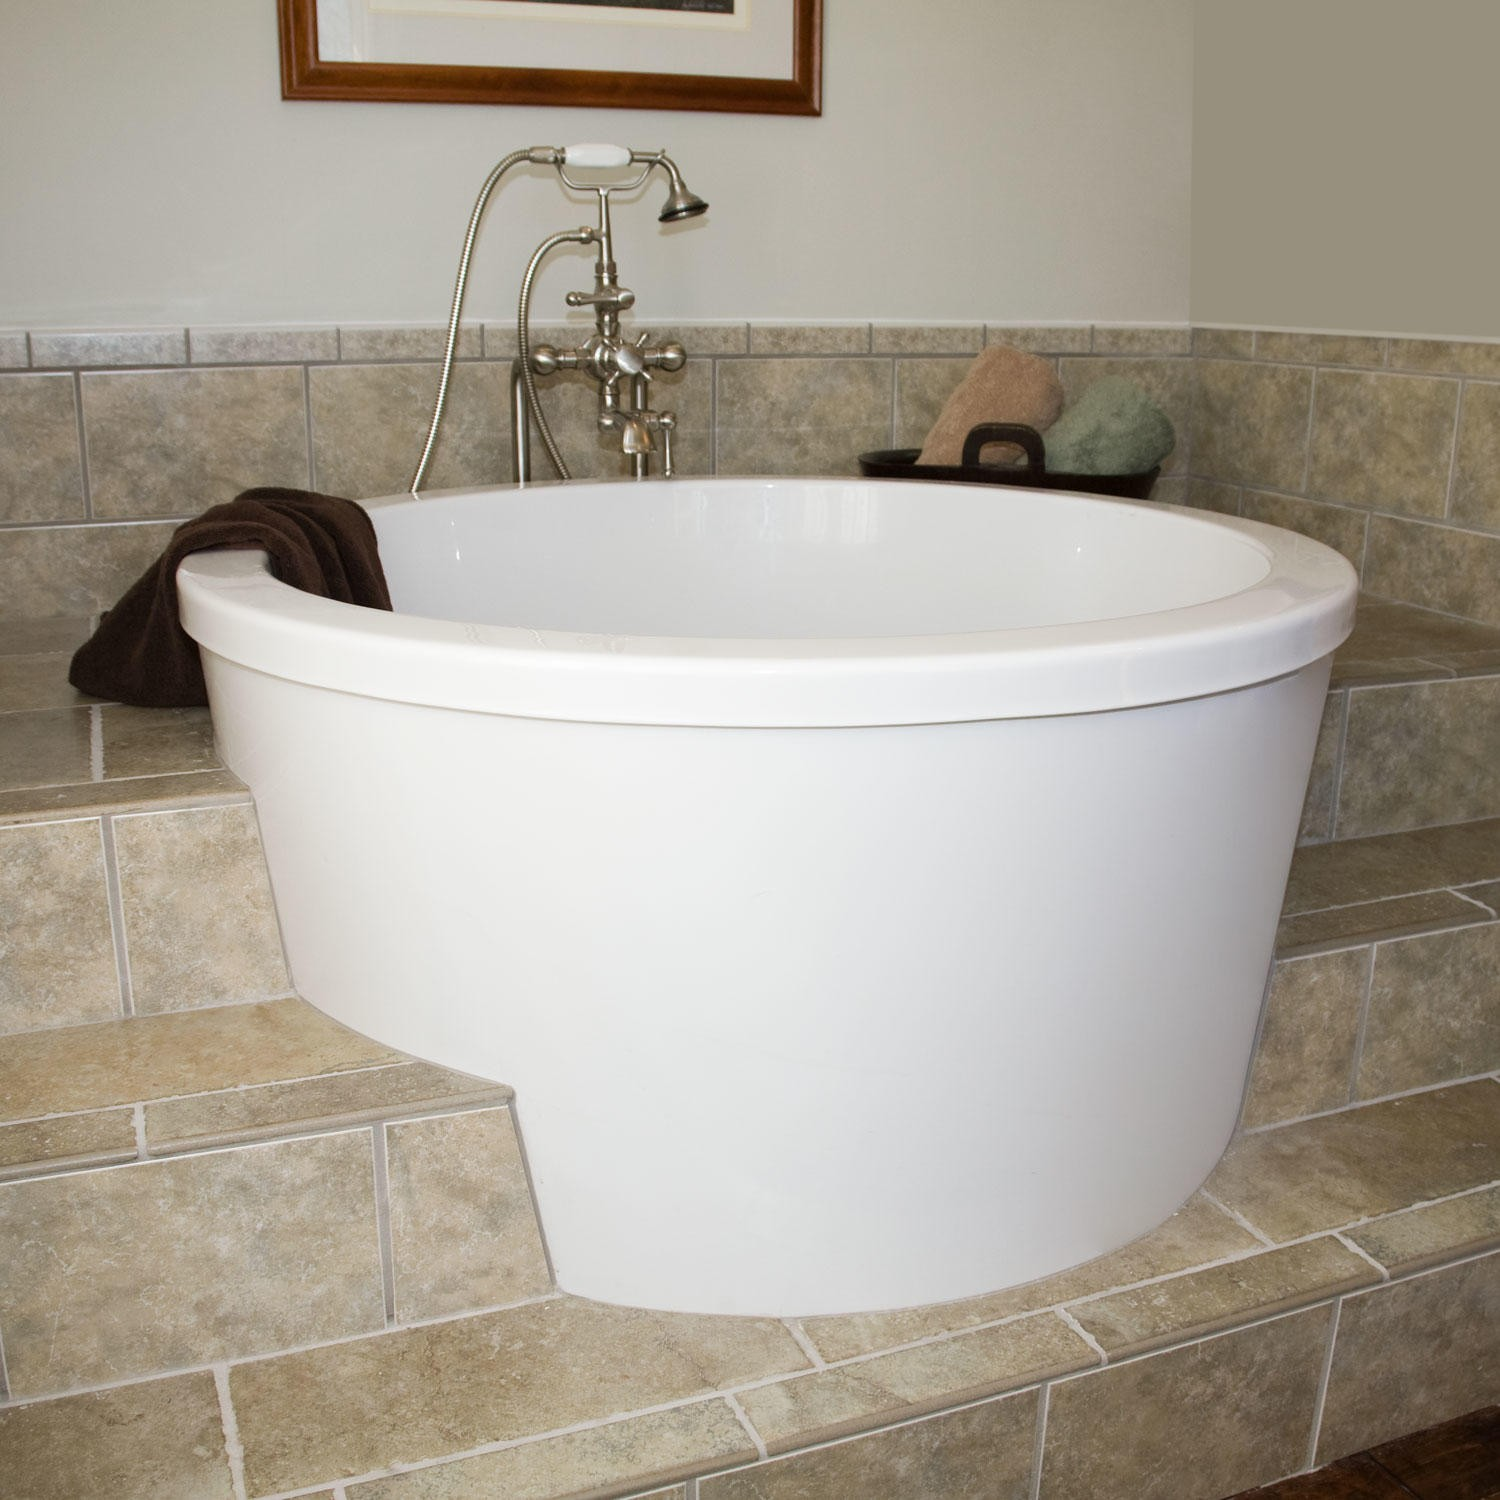 Small soaker tub ideas square japanese soaking tub small room decorating ideas - Small soaking tub ...